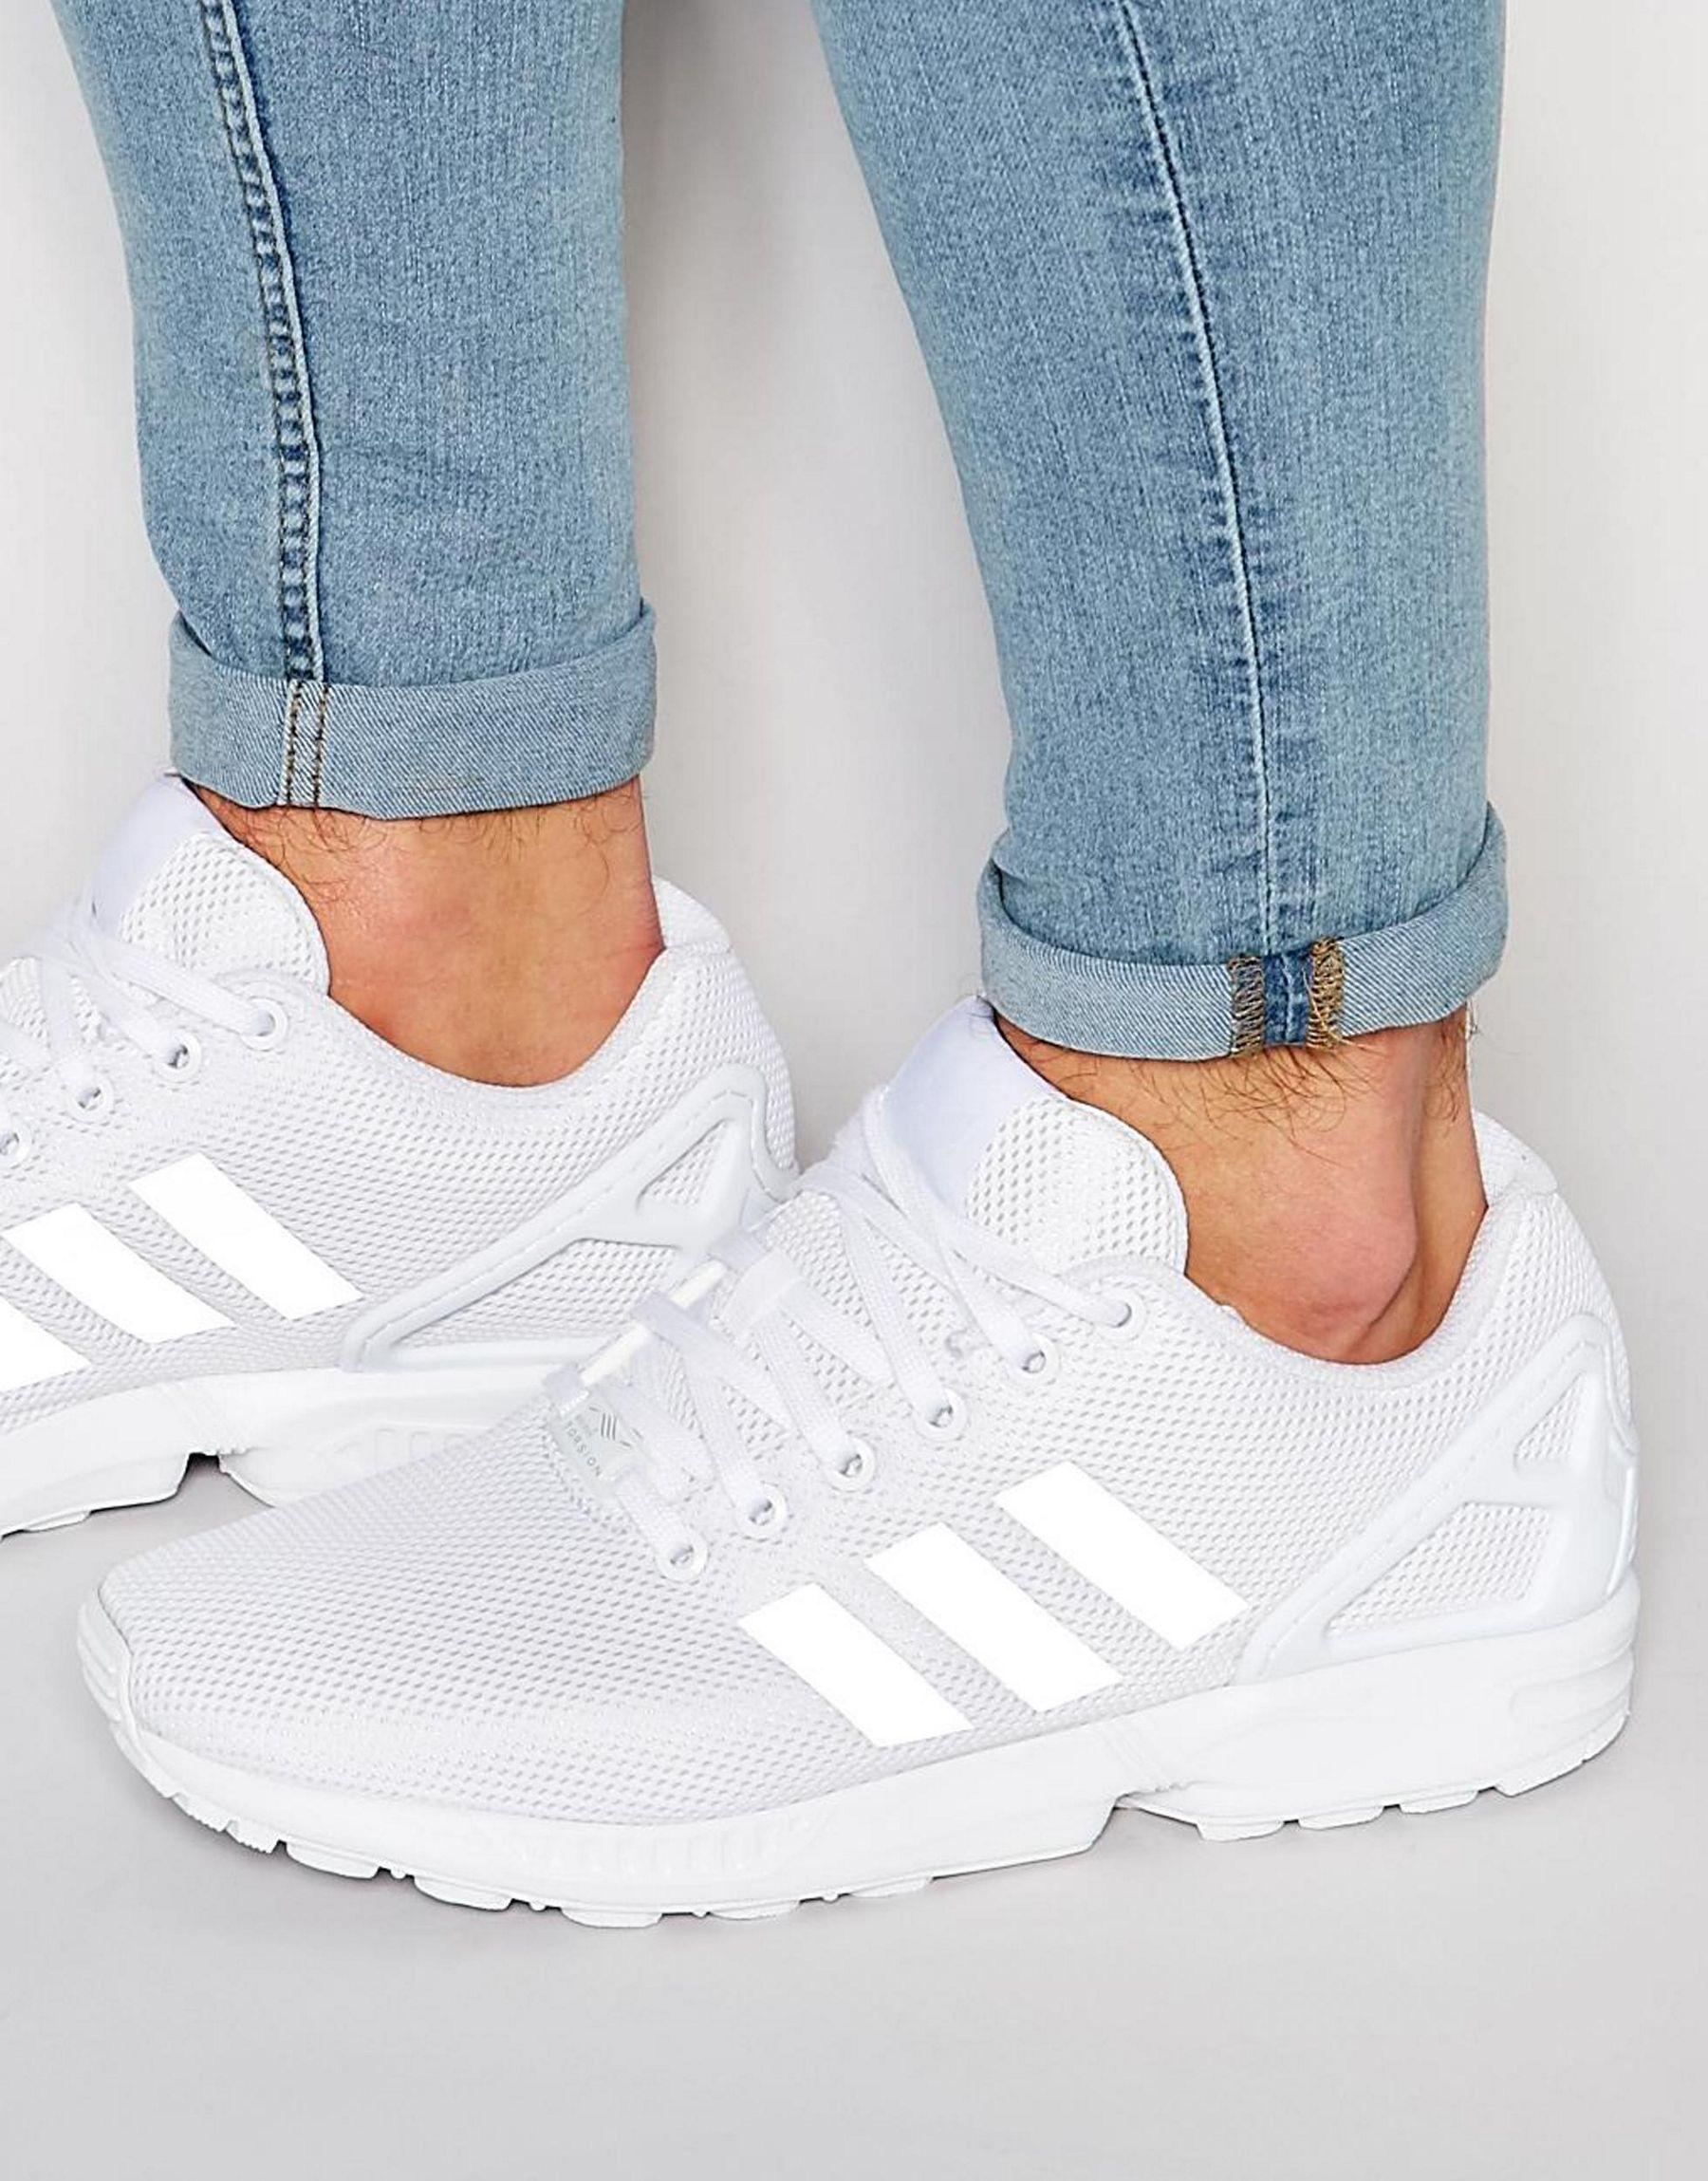 9aa7742ae ... new arrivals lyst adidas originals zx flux trainers s79093 in white for  men 661b8 b17ee